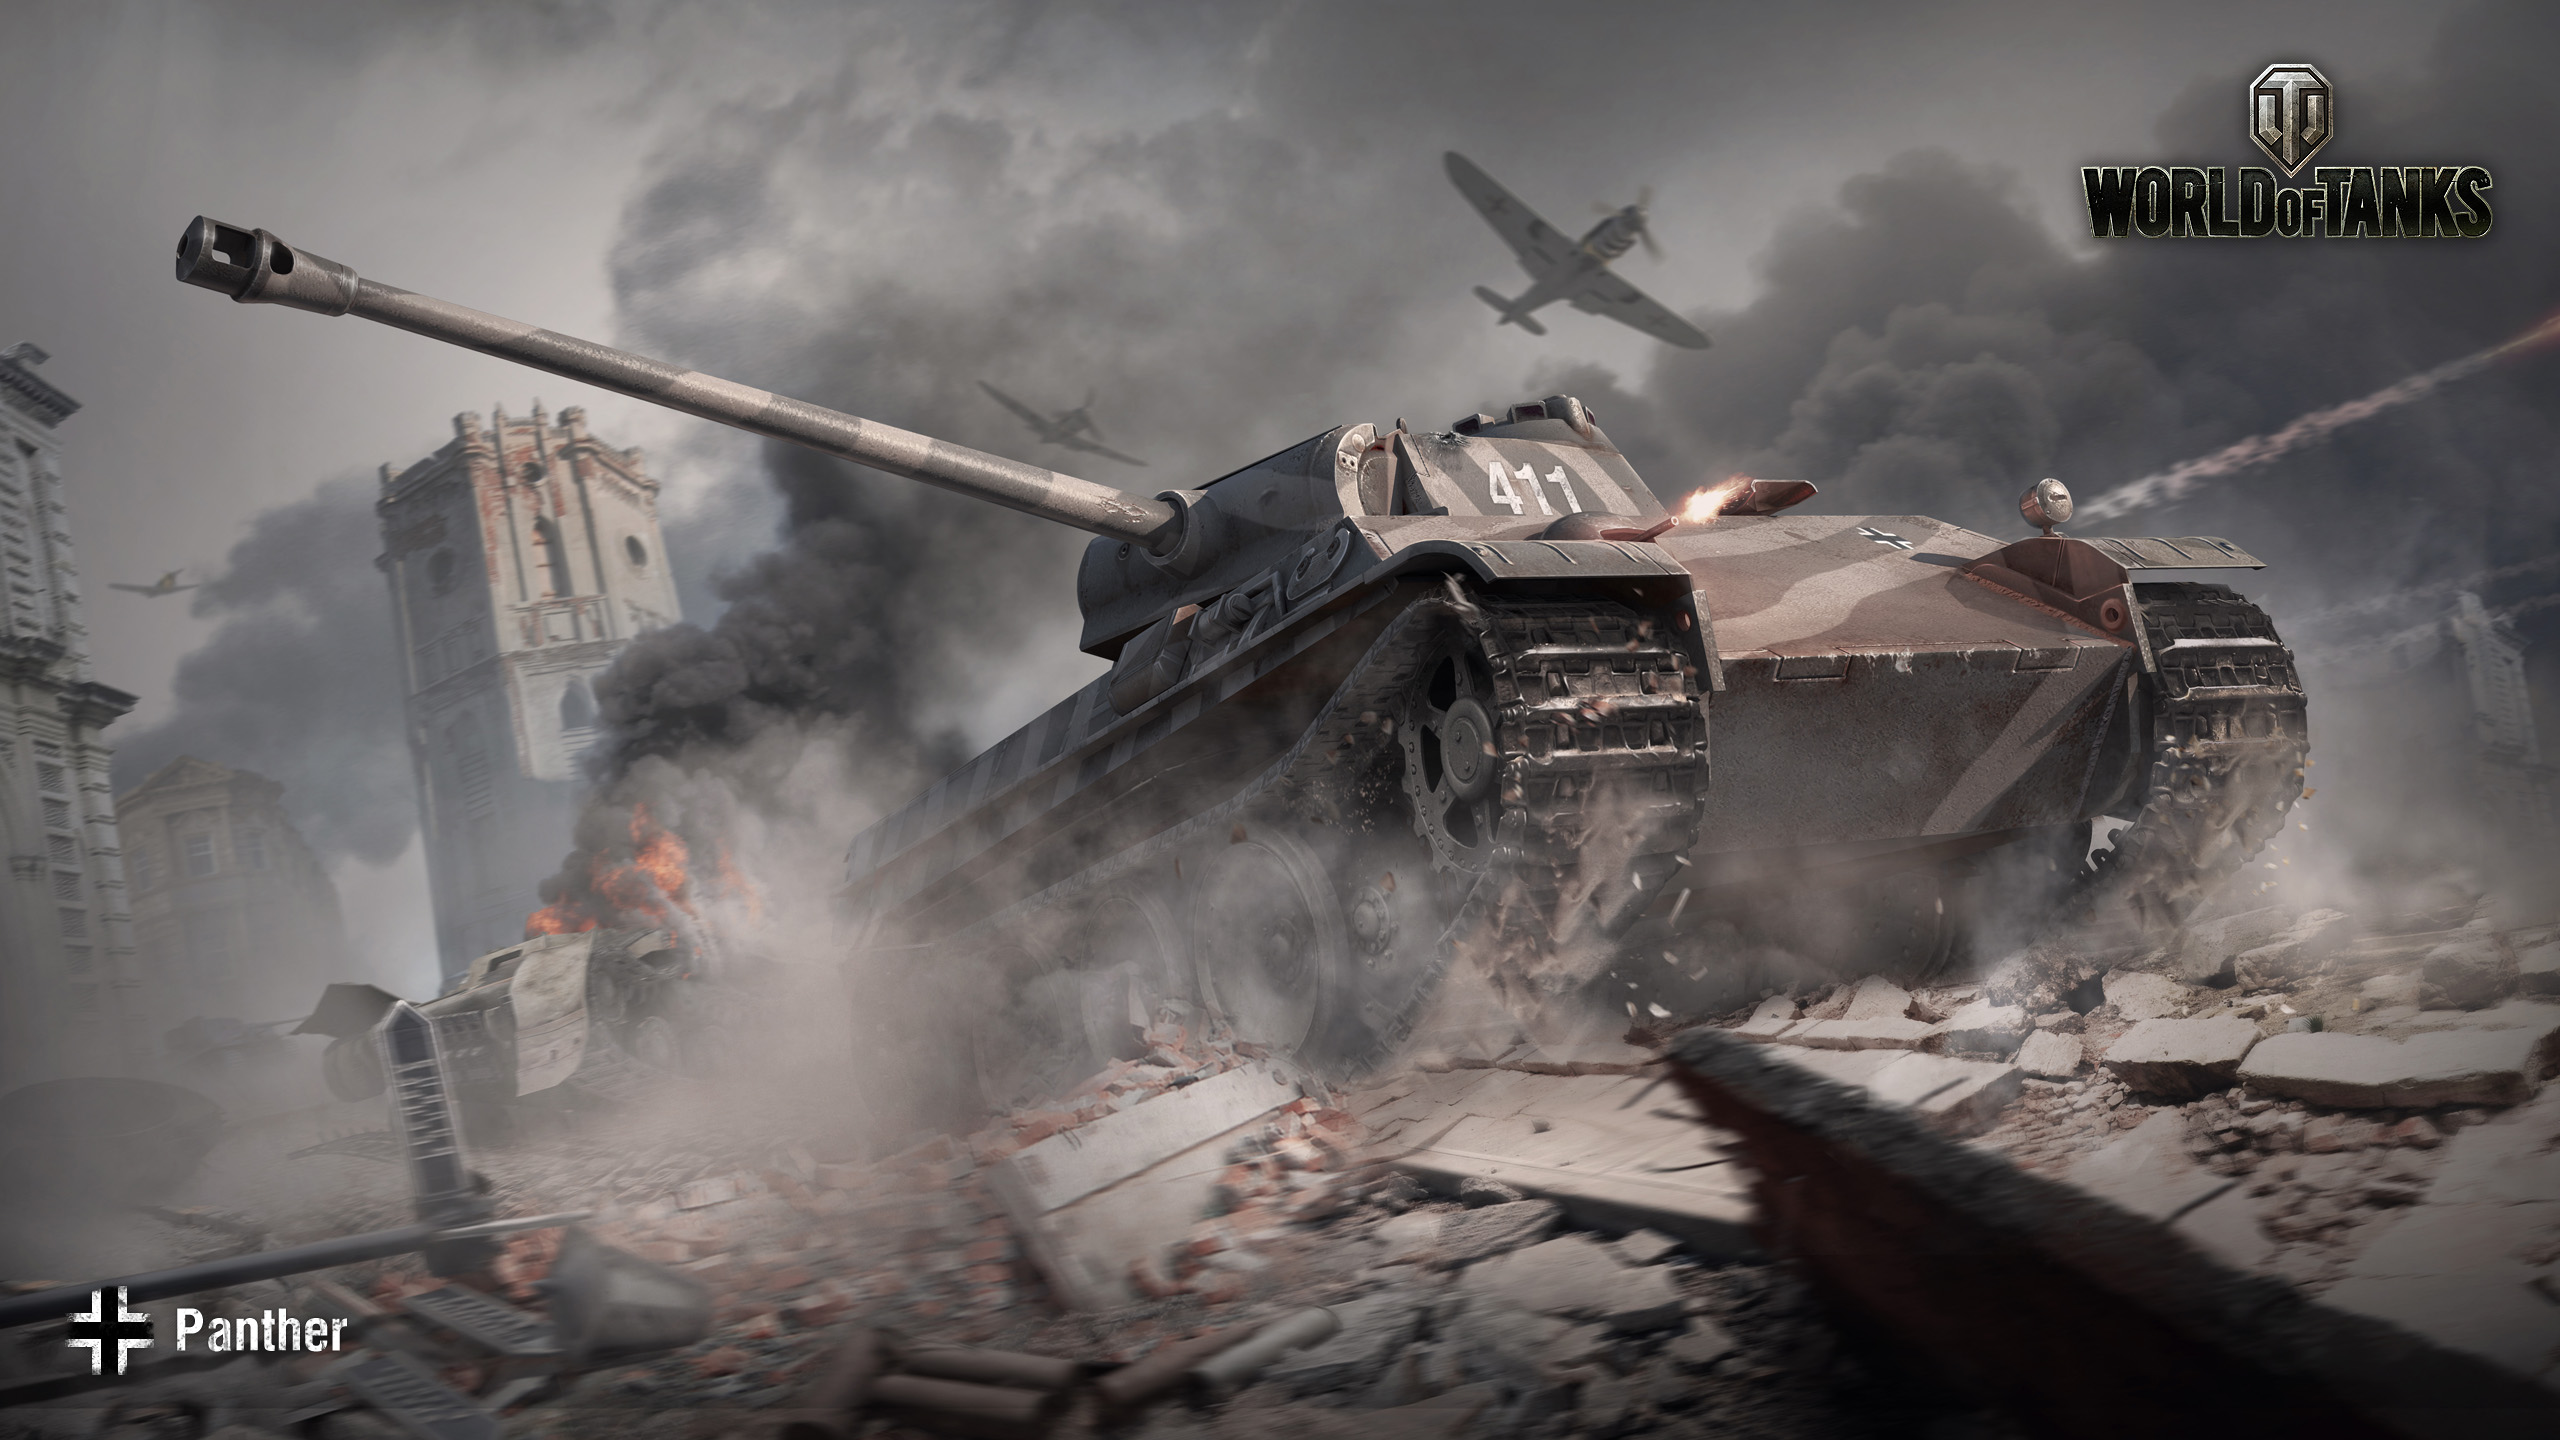 Wallpaper for april 2014 general news world of tanks wallpaper for april 2014 thecheapjerseys Choice Image